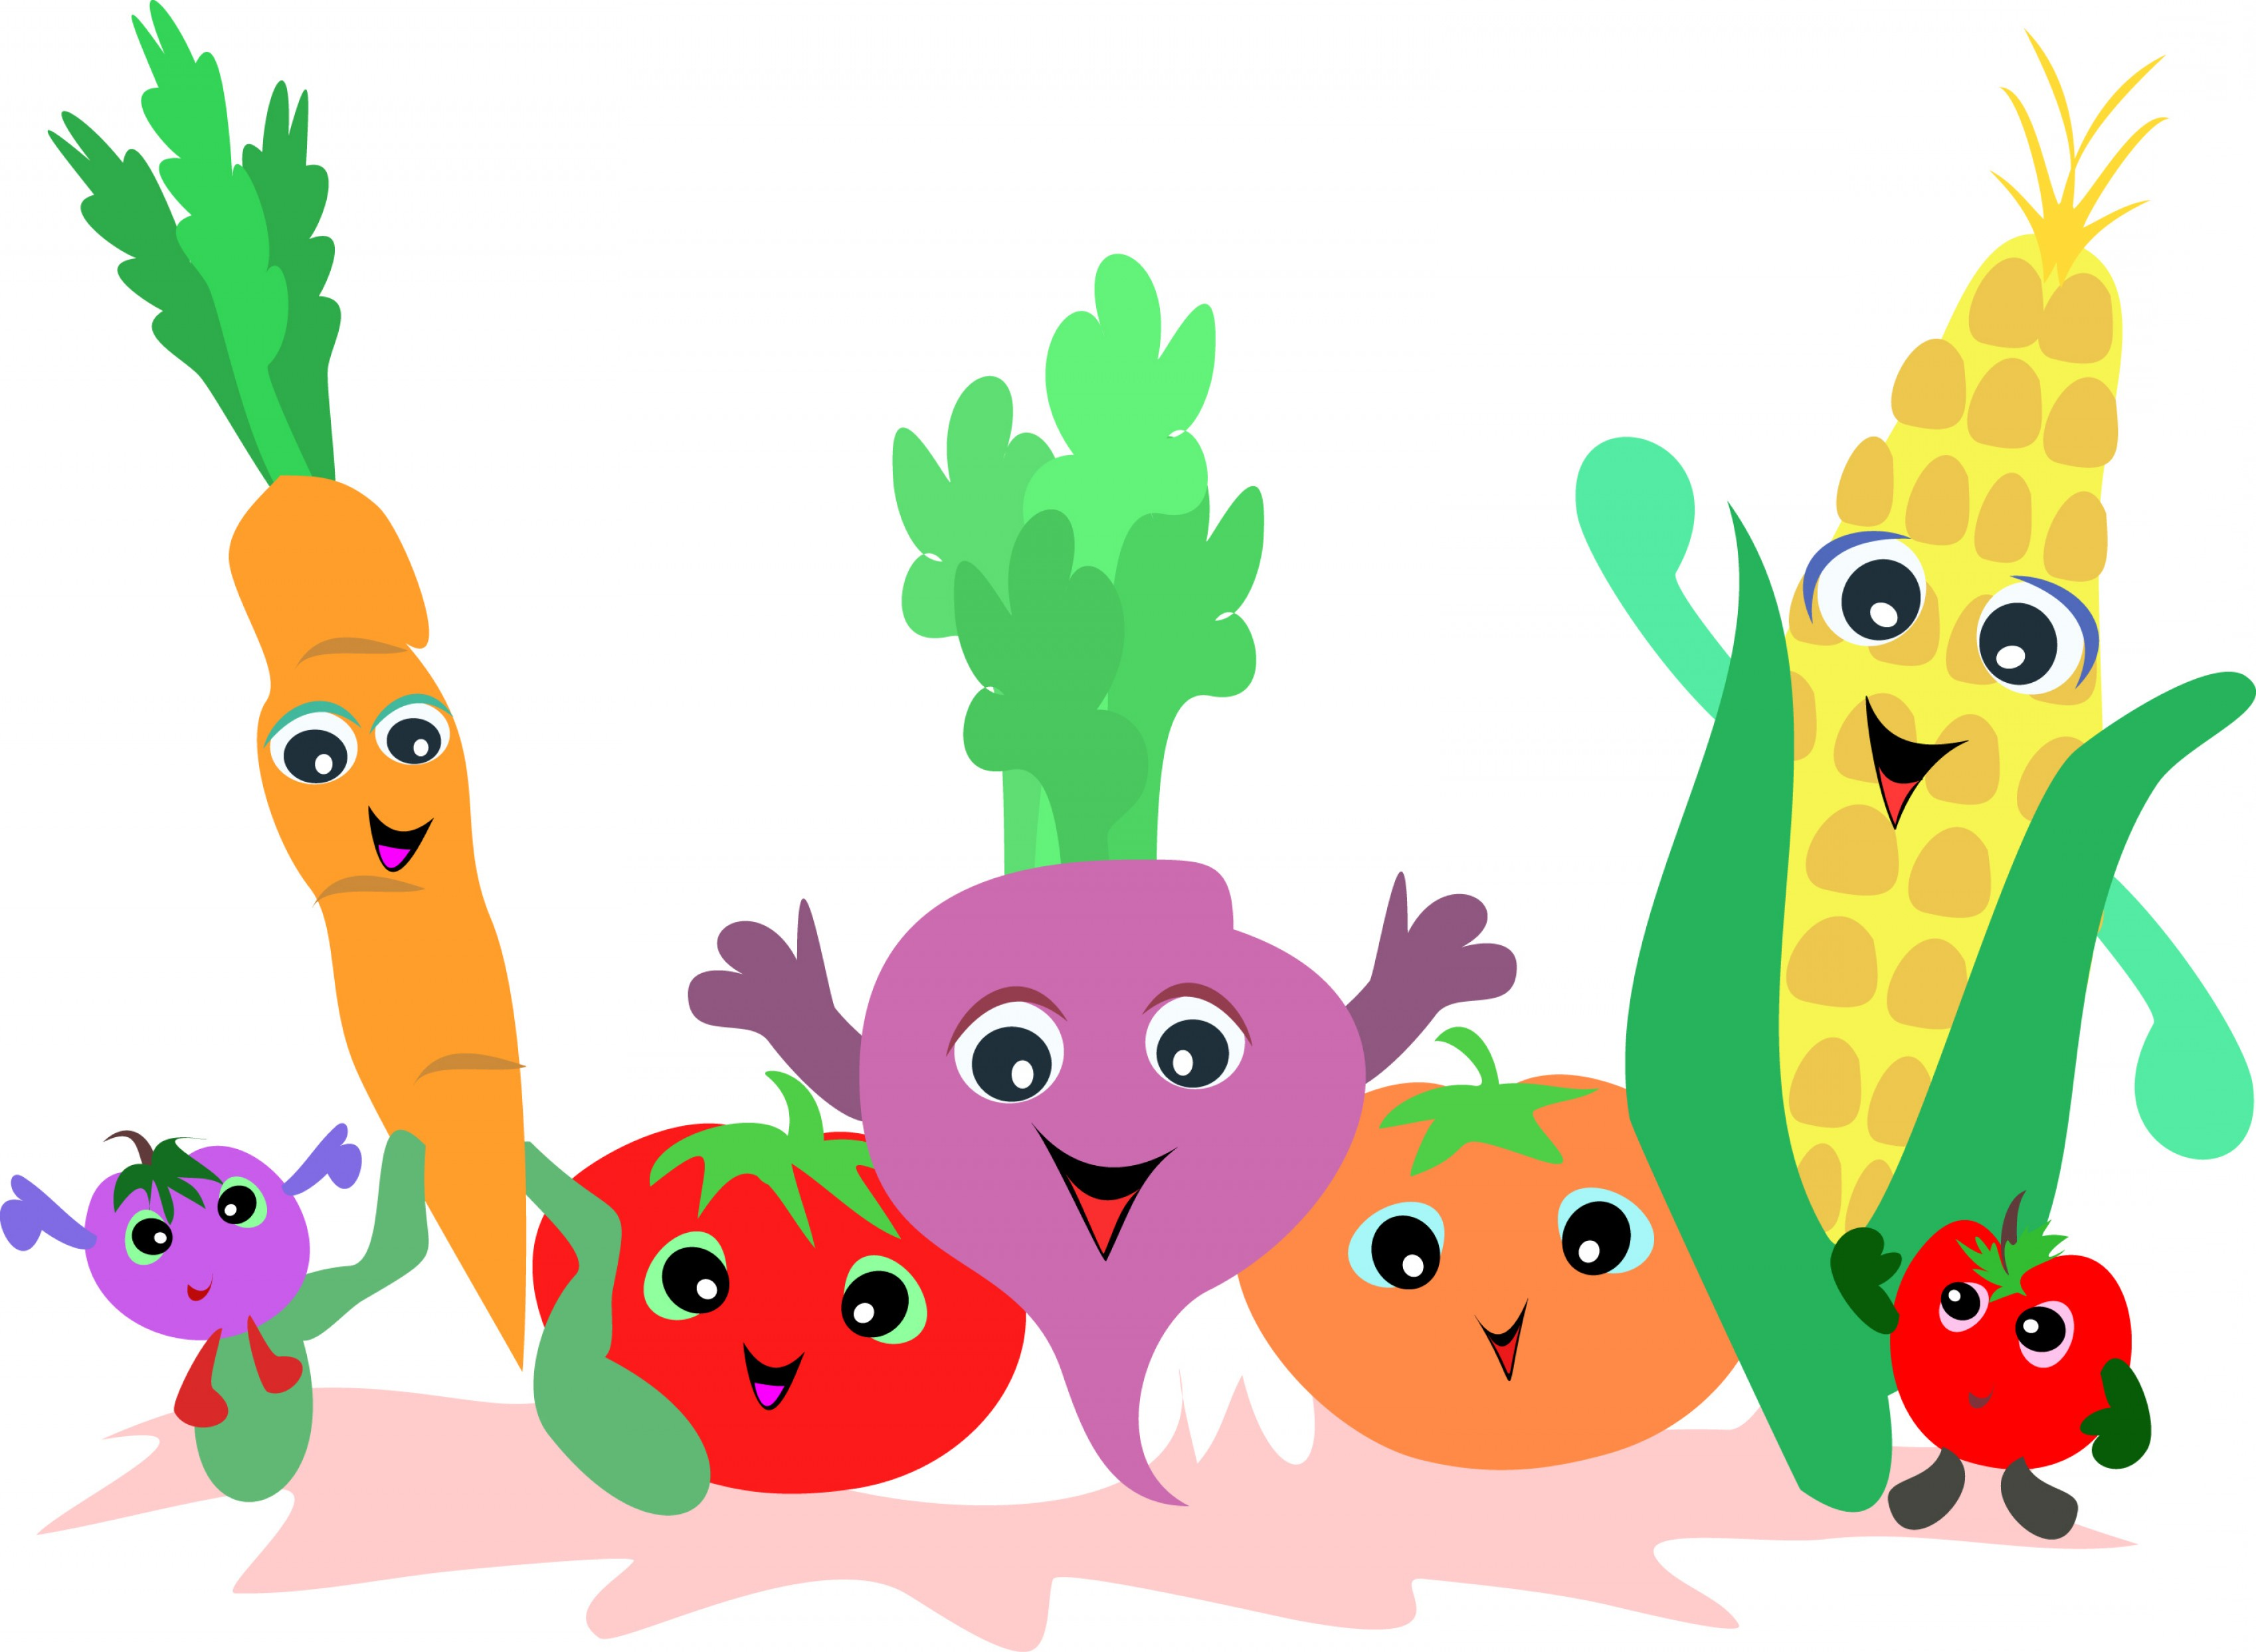 Vegetables clipart with image gallery hcpr.